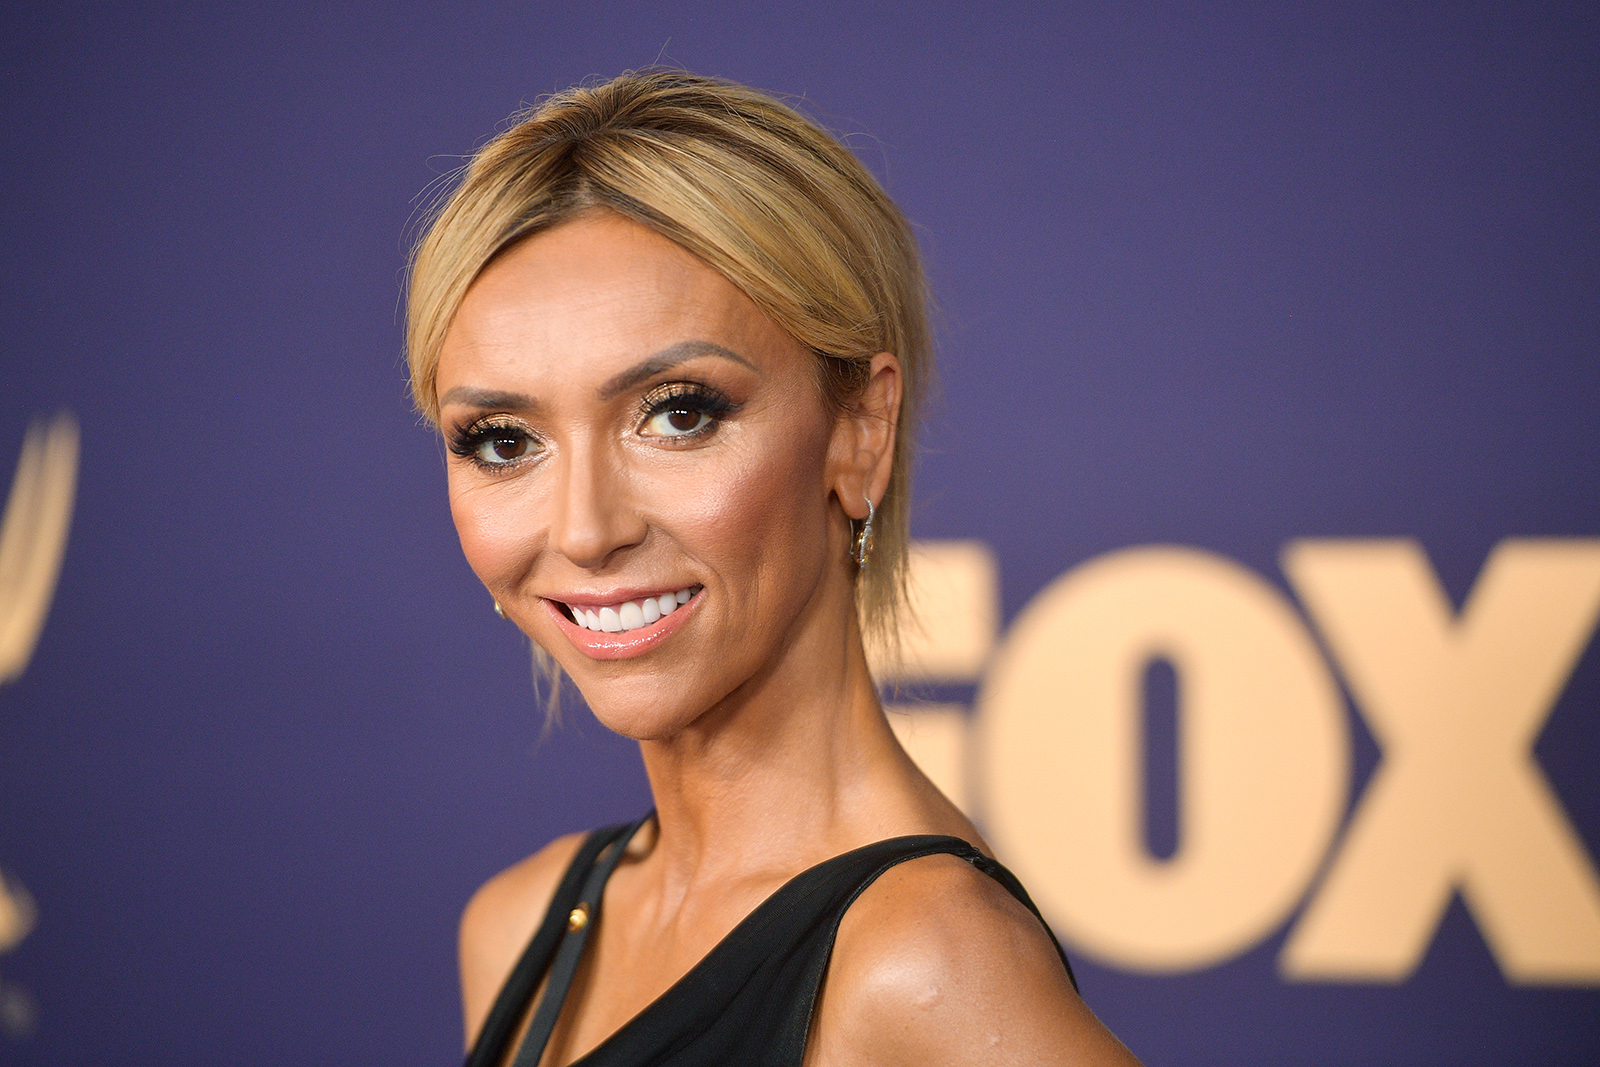 Giuliana Rancic attends the 71st Emmy Awards at Microsoft Theater on September 22, in Los Angeles.